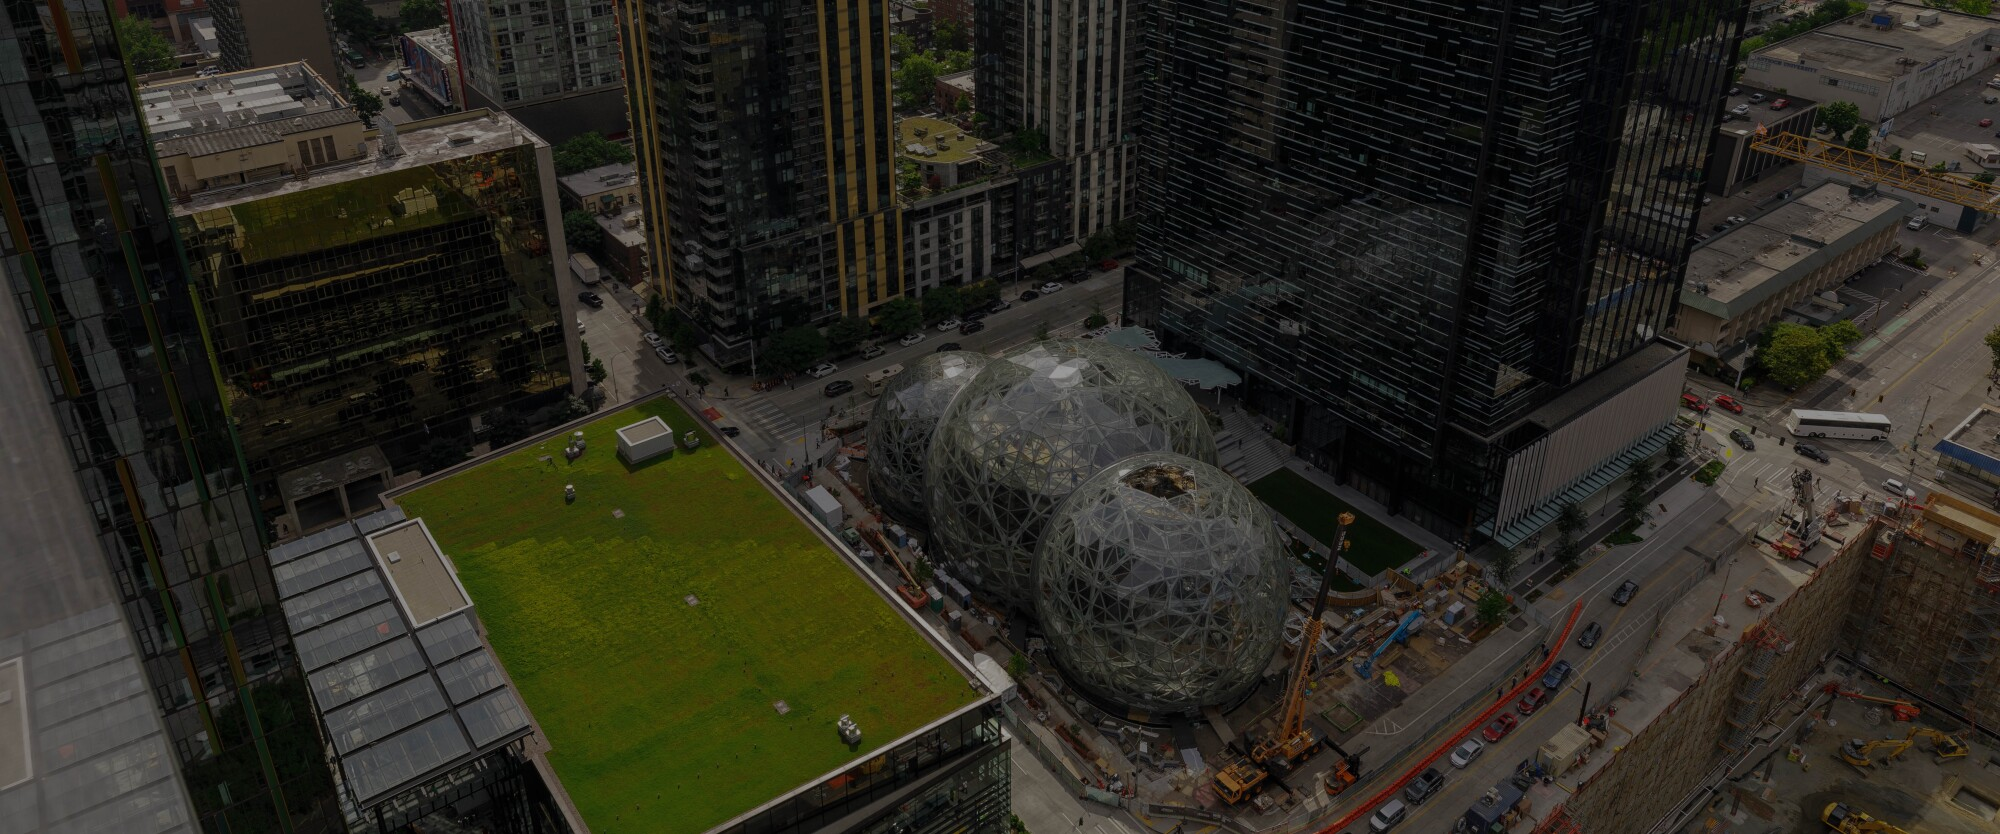 An image of Amazon's Seattle Campus